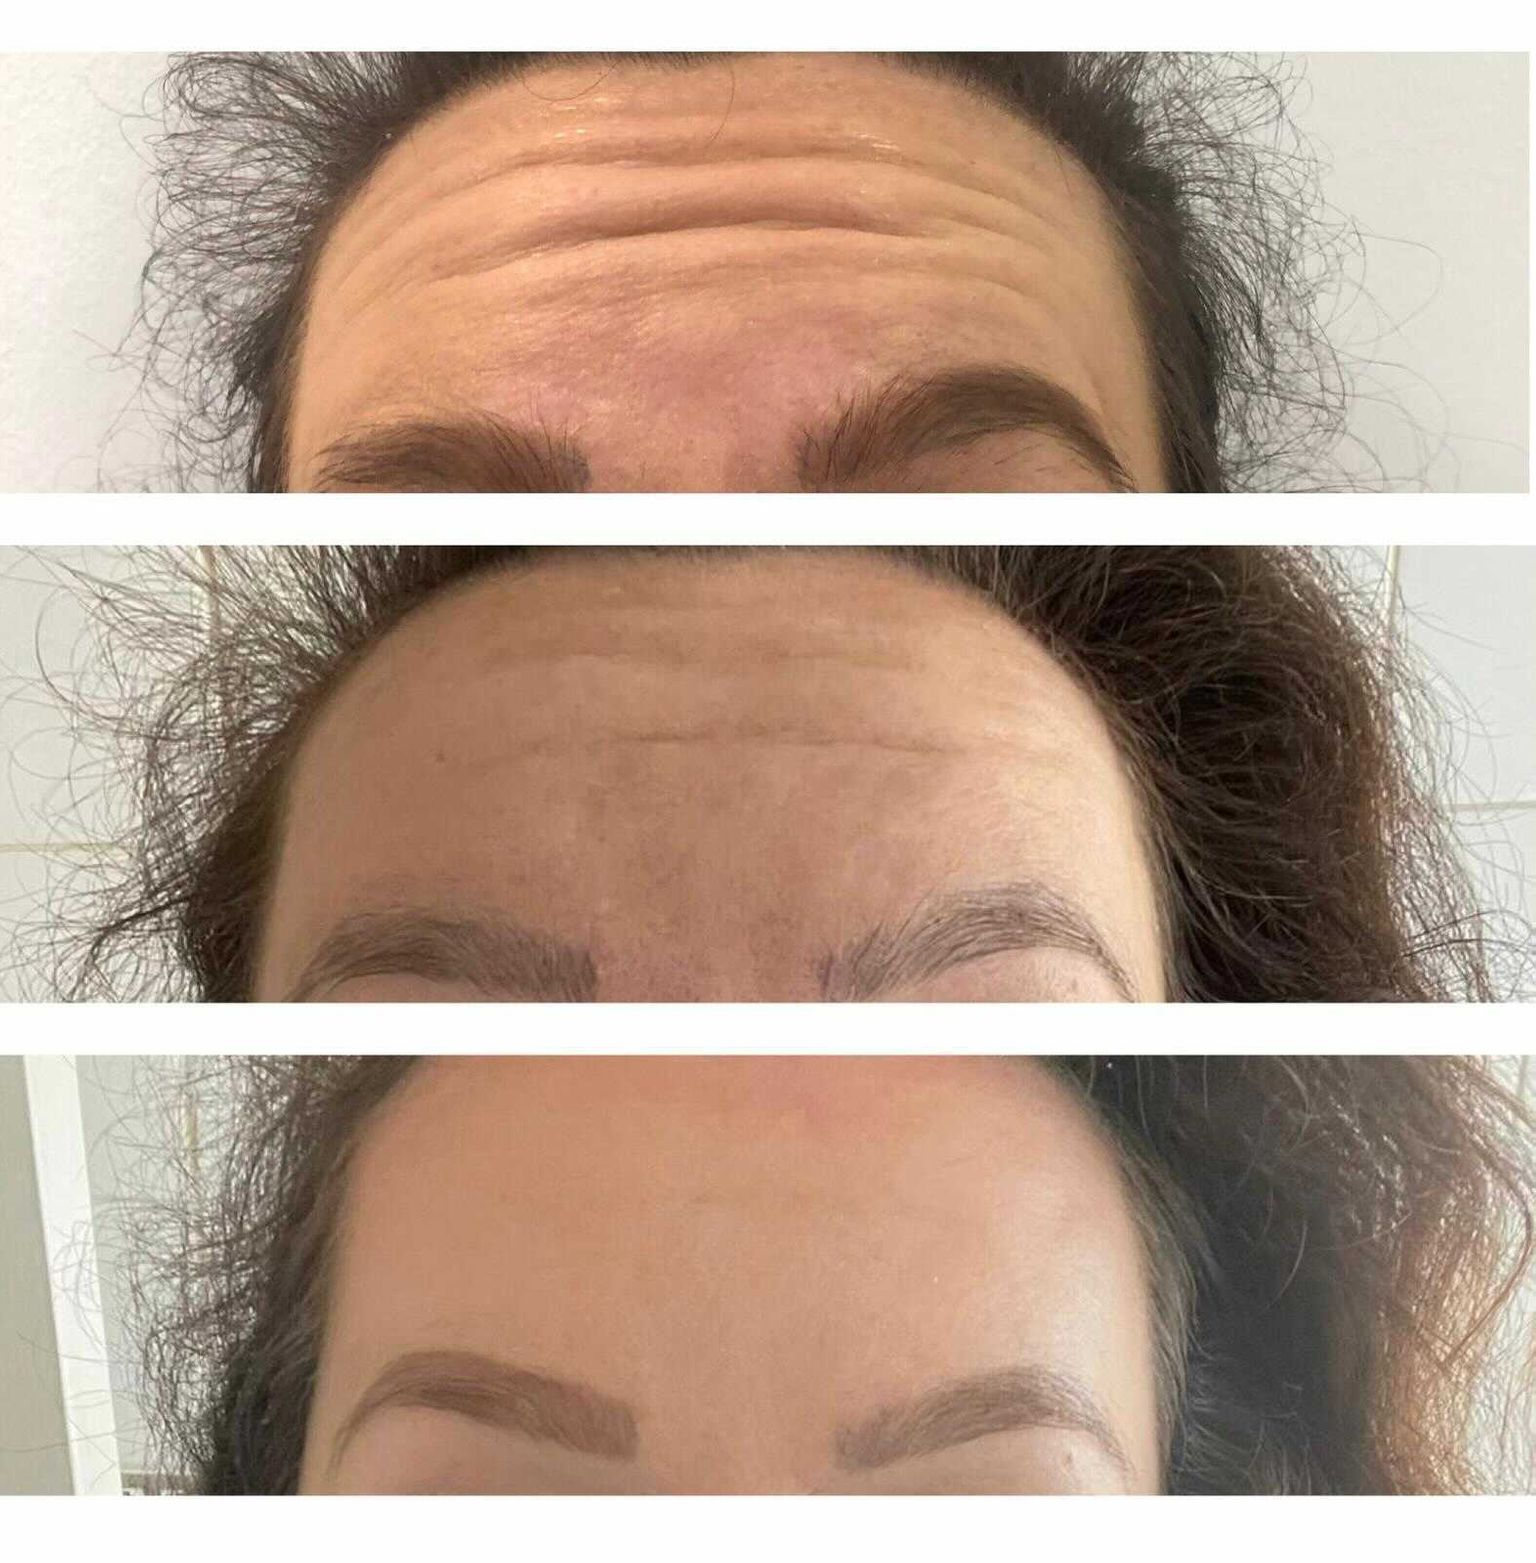 Chelsea's Botox before and after results